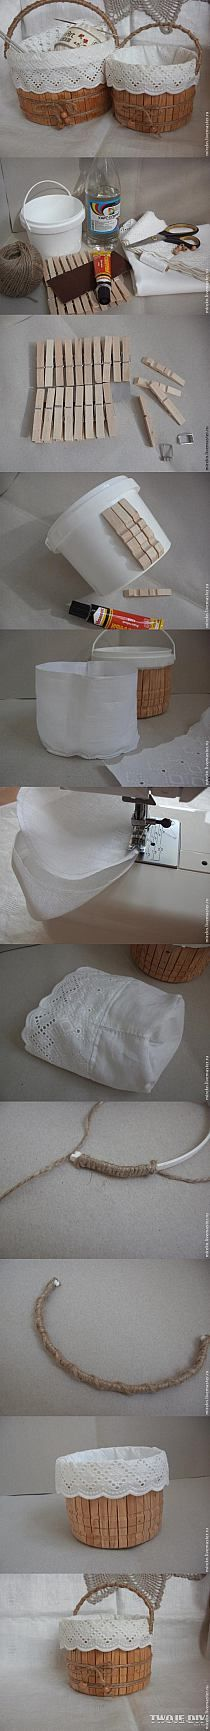 Súper.. Se puede usar para guardar muchísimas cosas cosas.. Ejemplo: los broches de la ropa! ~-> ¿ try using larger container » putting 2 rows of pins around »» Depending on liner fabric [white eyelet, burlap, cotton jersey, denim, ...] , choose coordinating twine [baker's, jute, recycled fabric 'yarn' (t-shirt, jeans, ...)] »»» so many options: *container size & shape (round, square, rectangular, ...); *liner fabric & *twine /yarn/rope ...